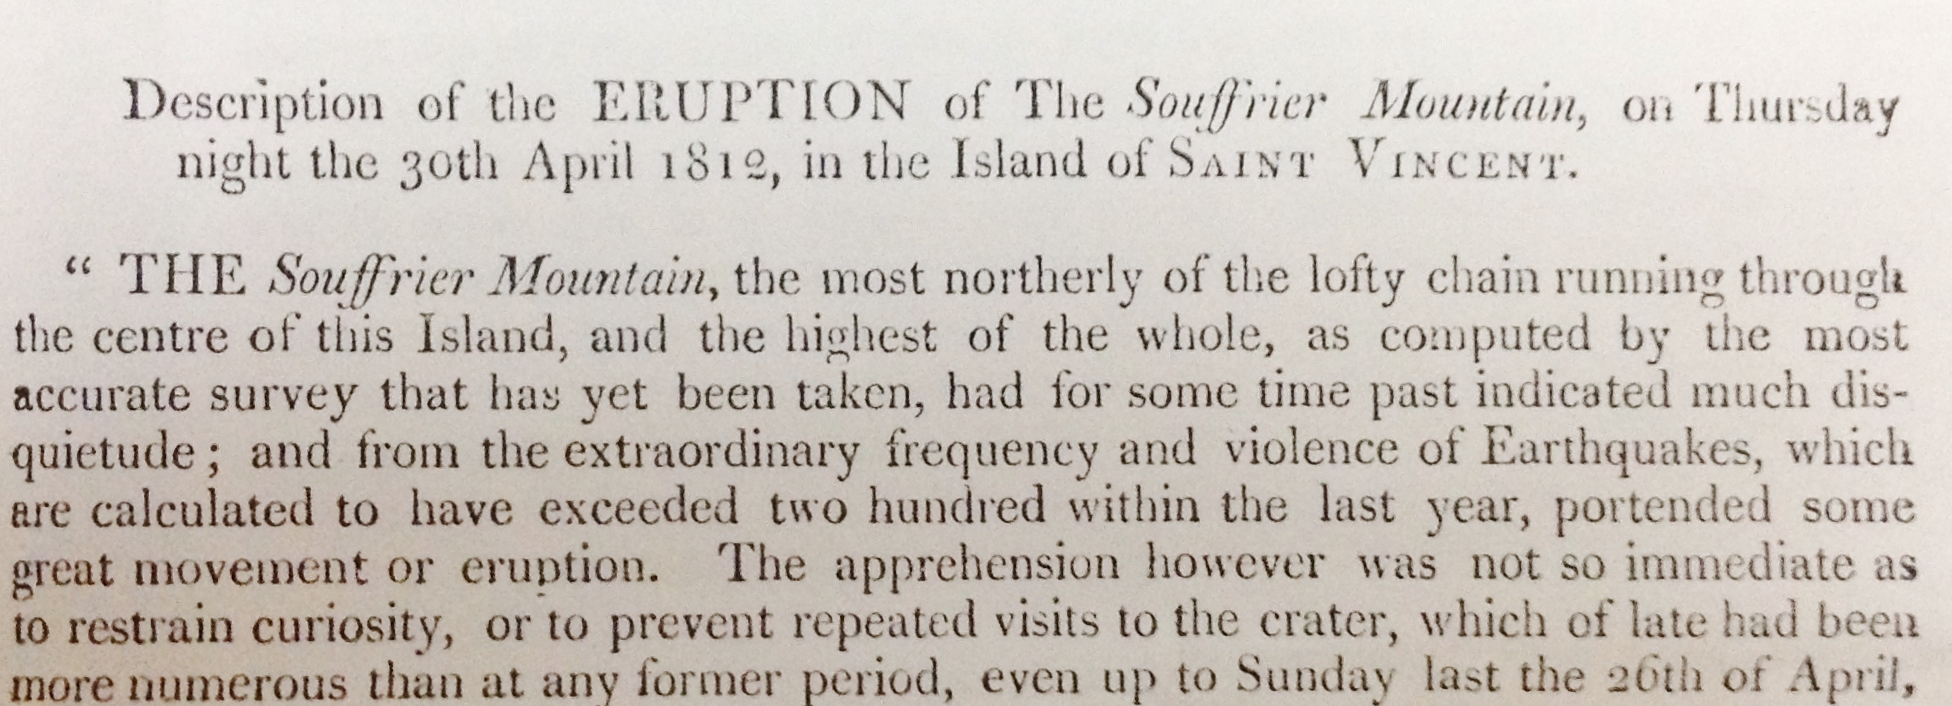 account of 1812 eruption